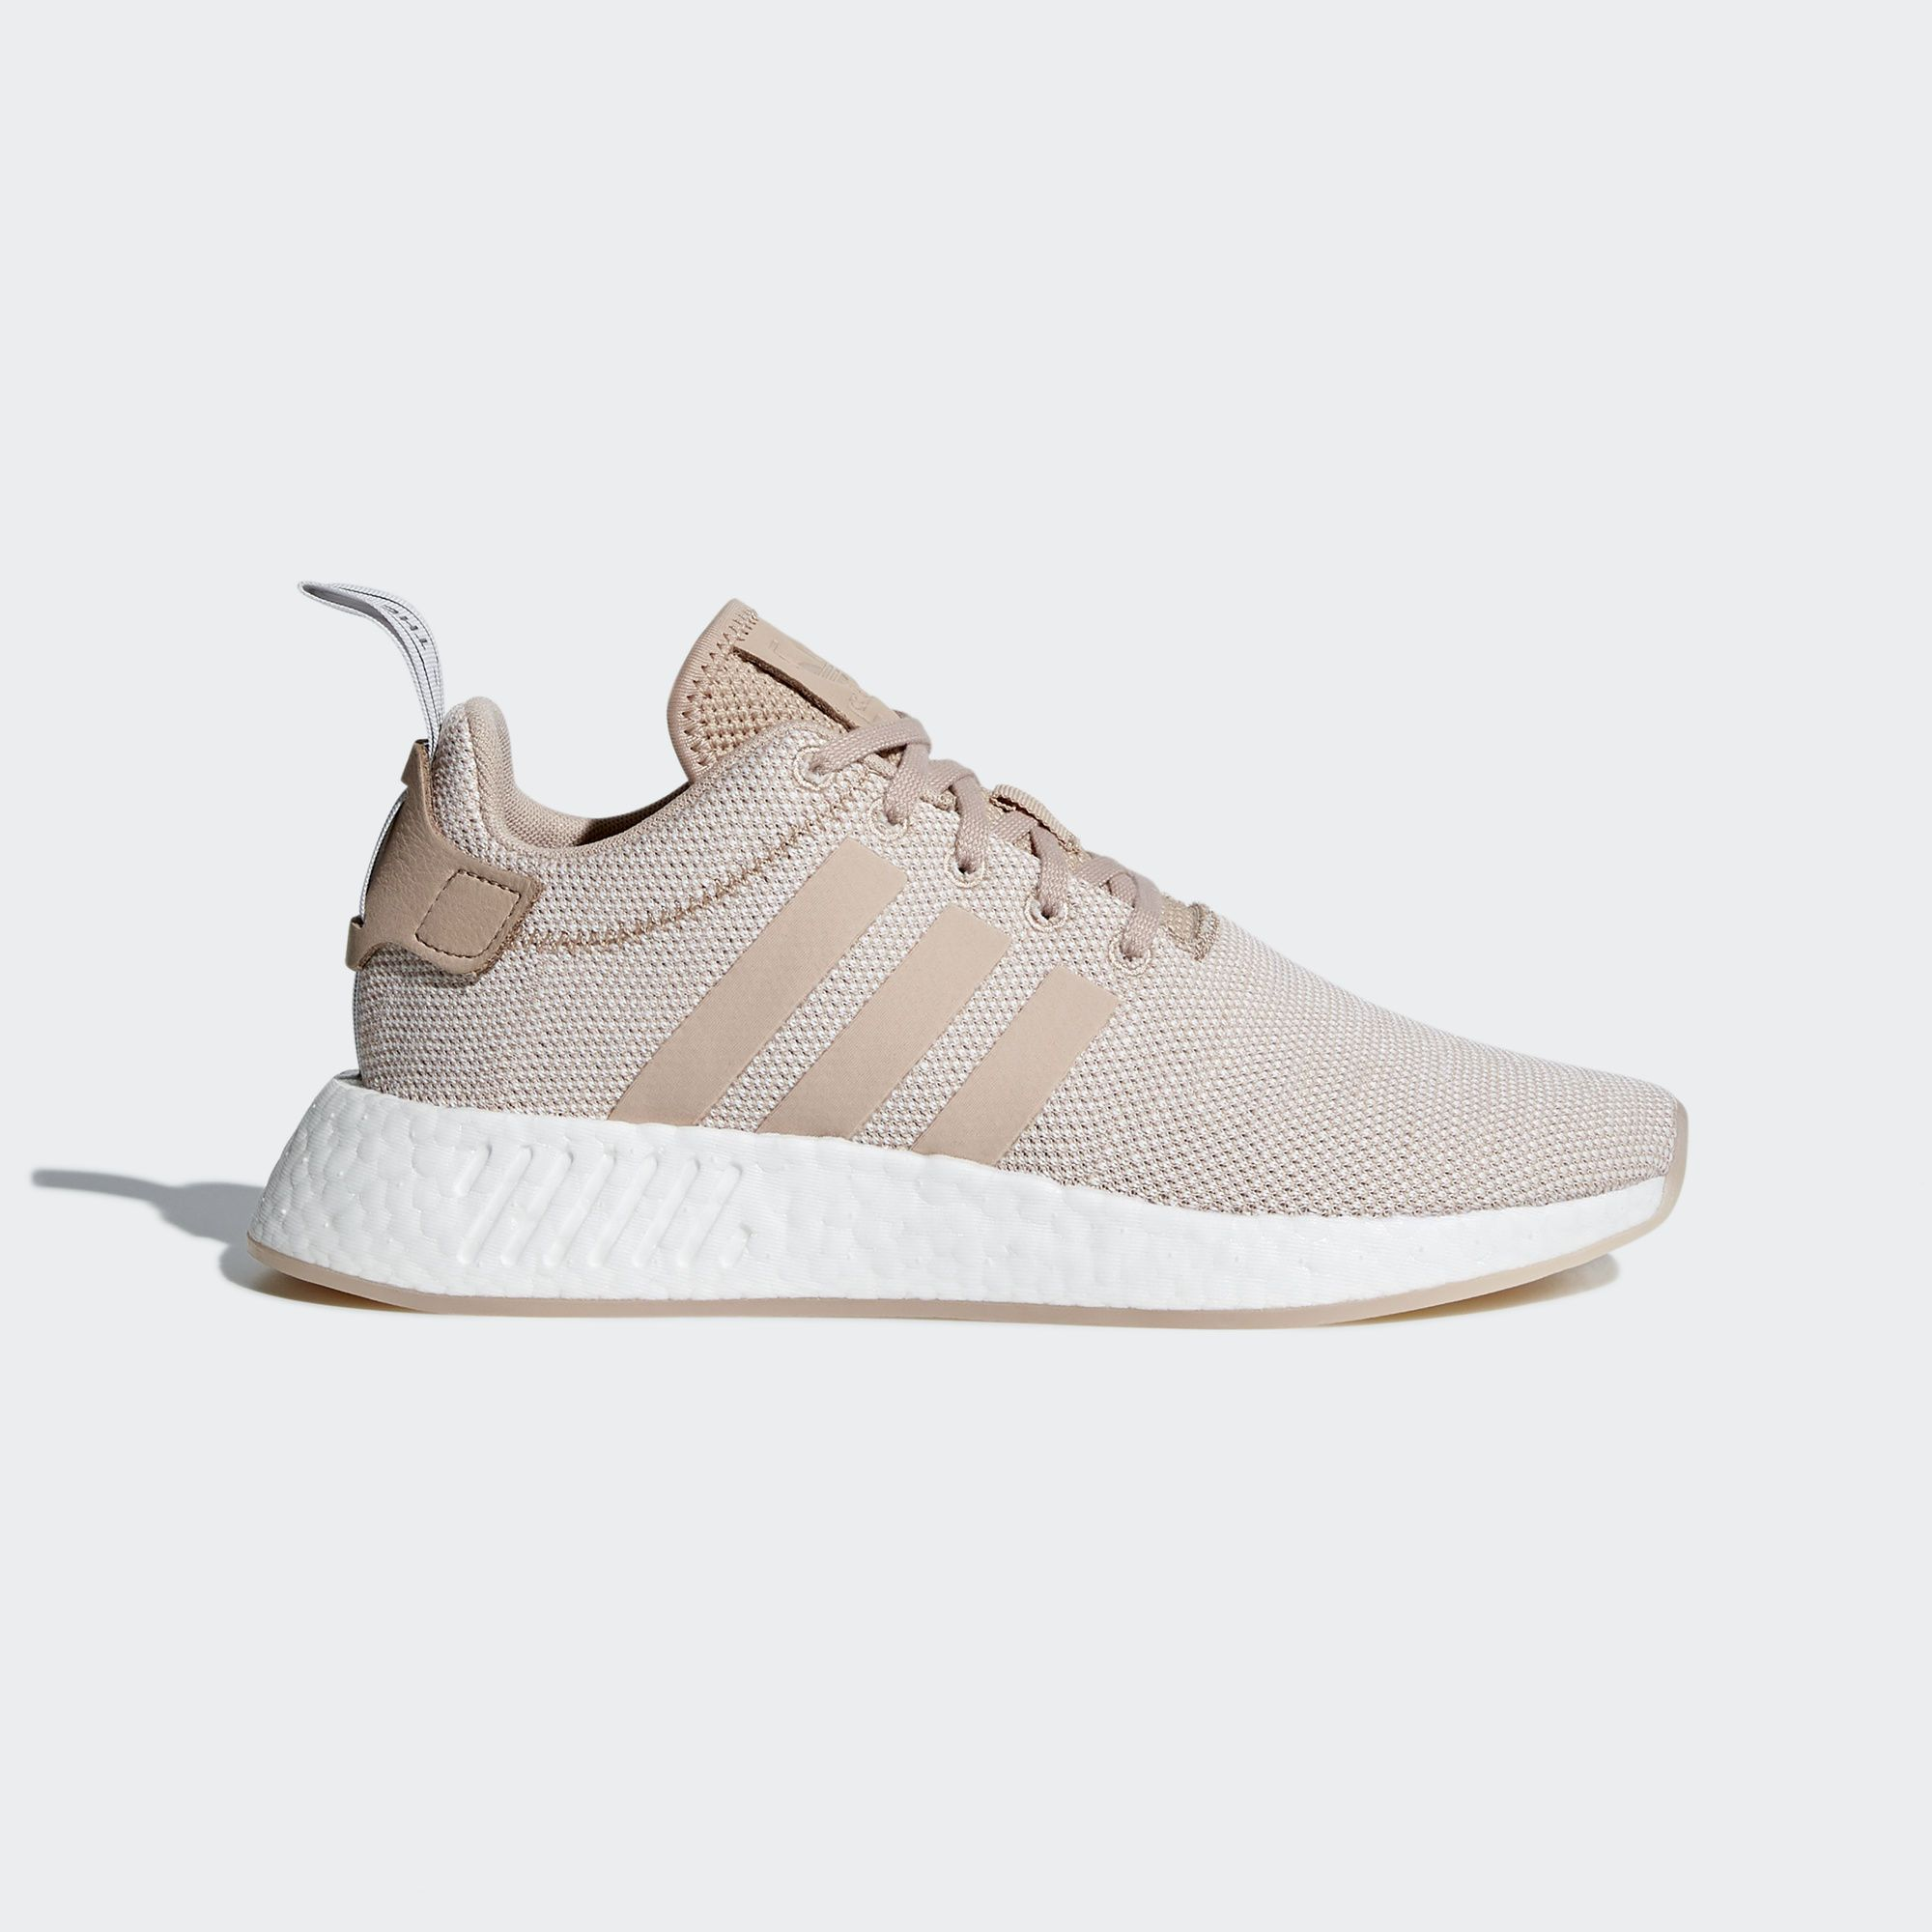 Pin by fashion.for.queenss on Shoes | Adidas nmd, Adidas nmd